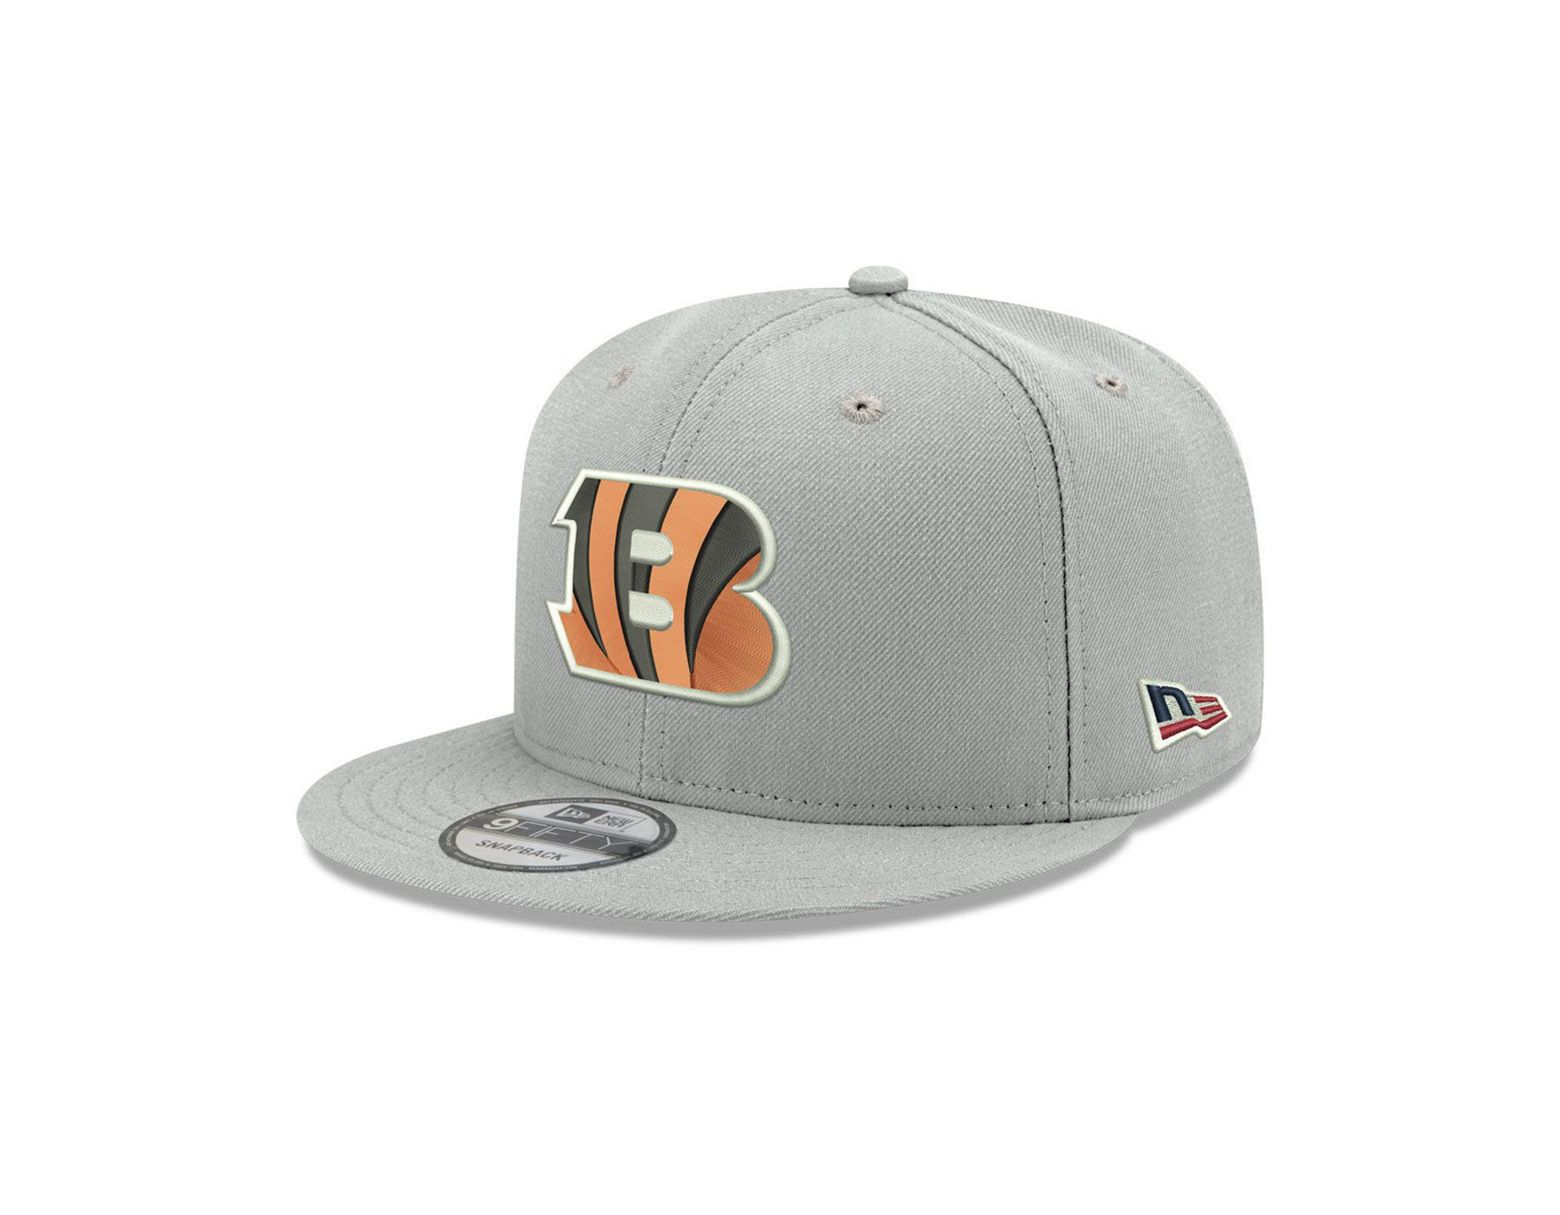 wholesale dealer 66a45 63b29 Lyst - KTZ Cincinnati Bengals Crafted In The Usa 9fifty Snapback Cap in  Gray for Men